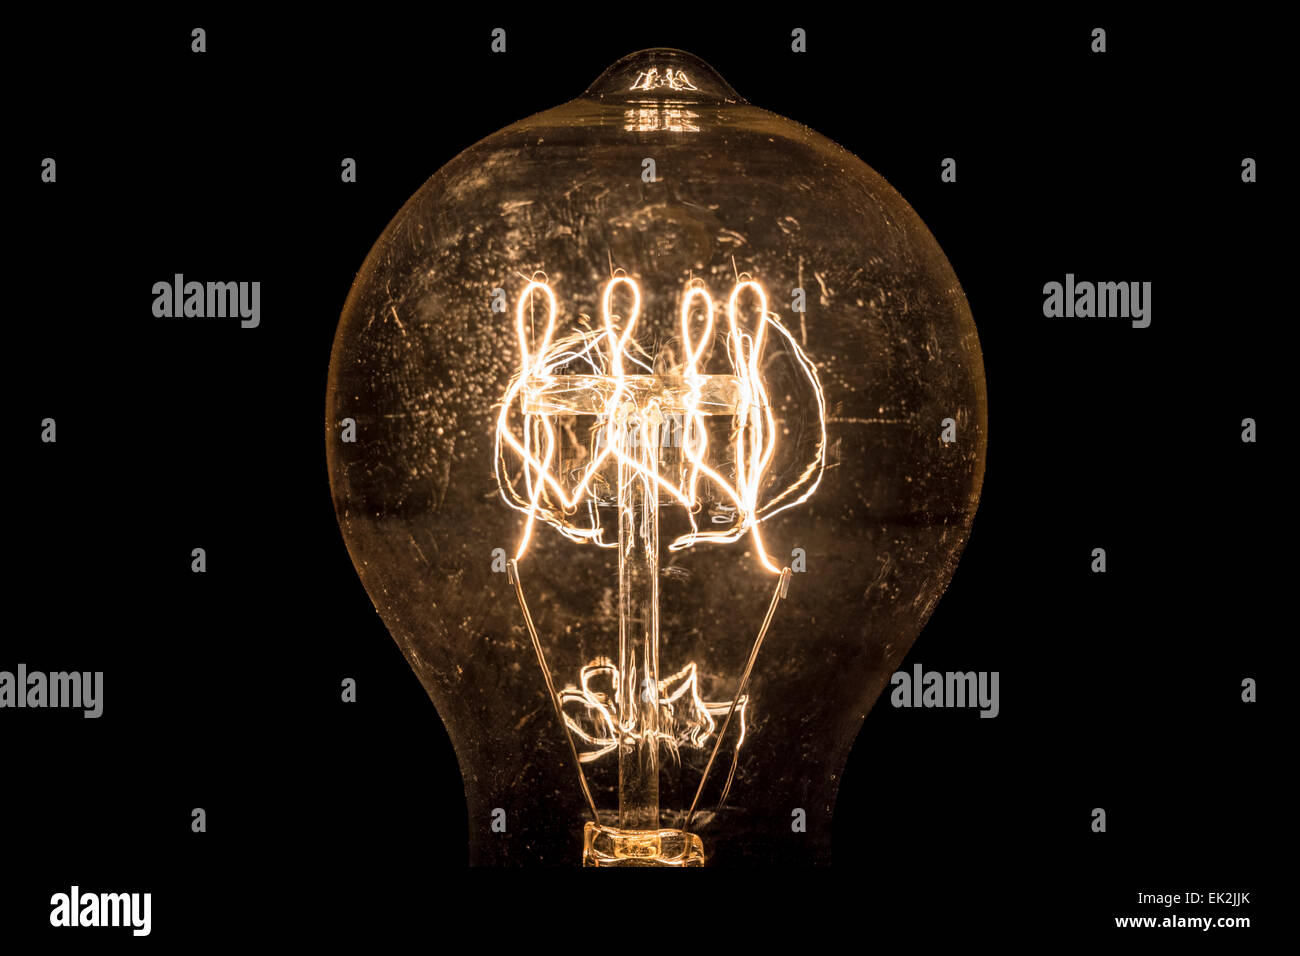 Vintage Incandescent Light Bulb Filament On Black.   Stock Image